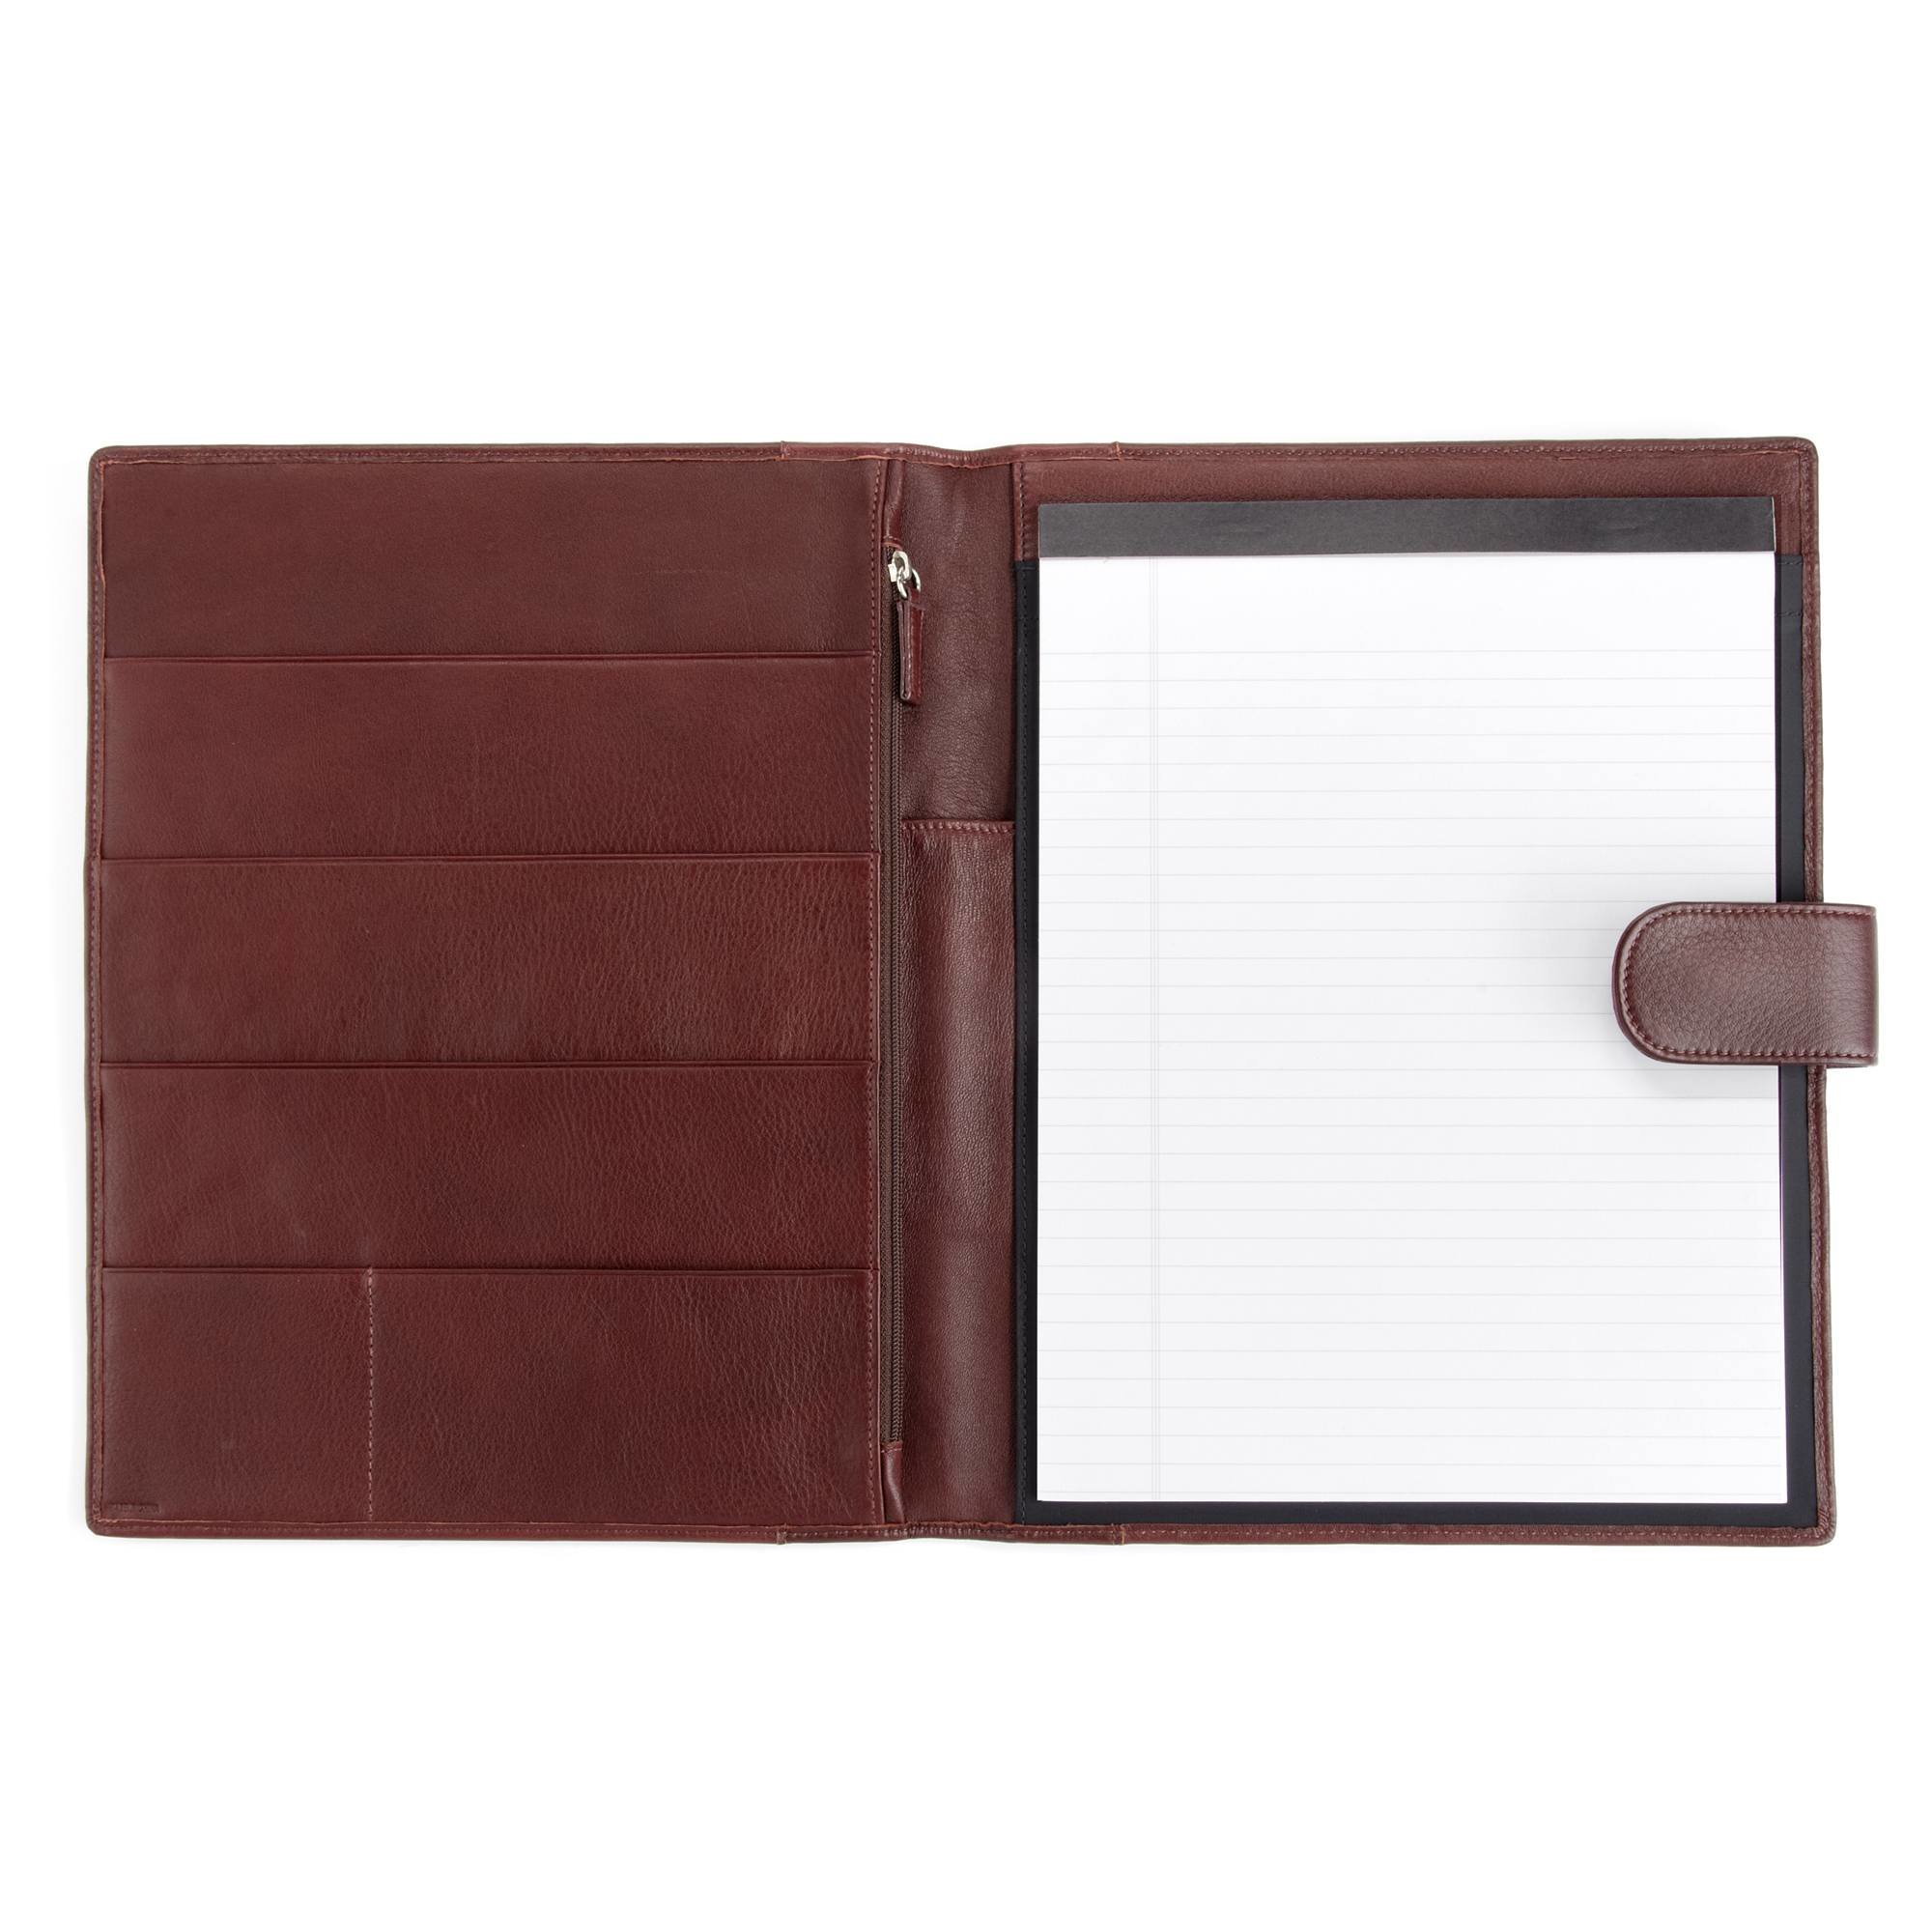 Leatherology Organizer Portfolio with Tablet Pocket & Magnetic Closure - Full Grain Leather - Burgundy (red)